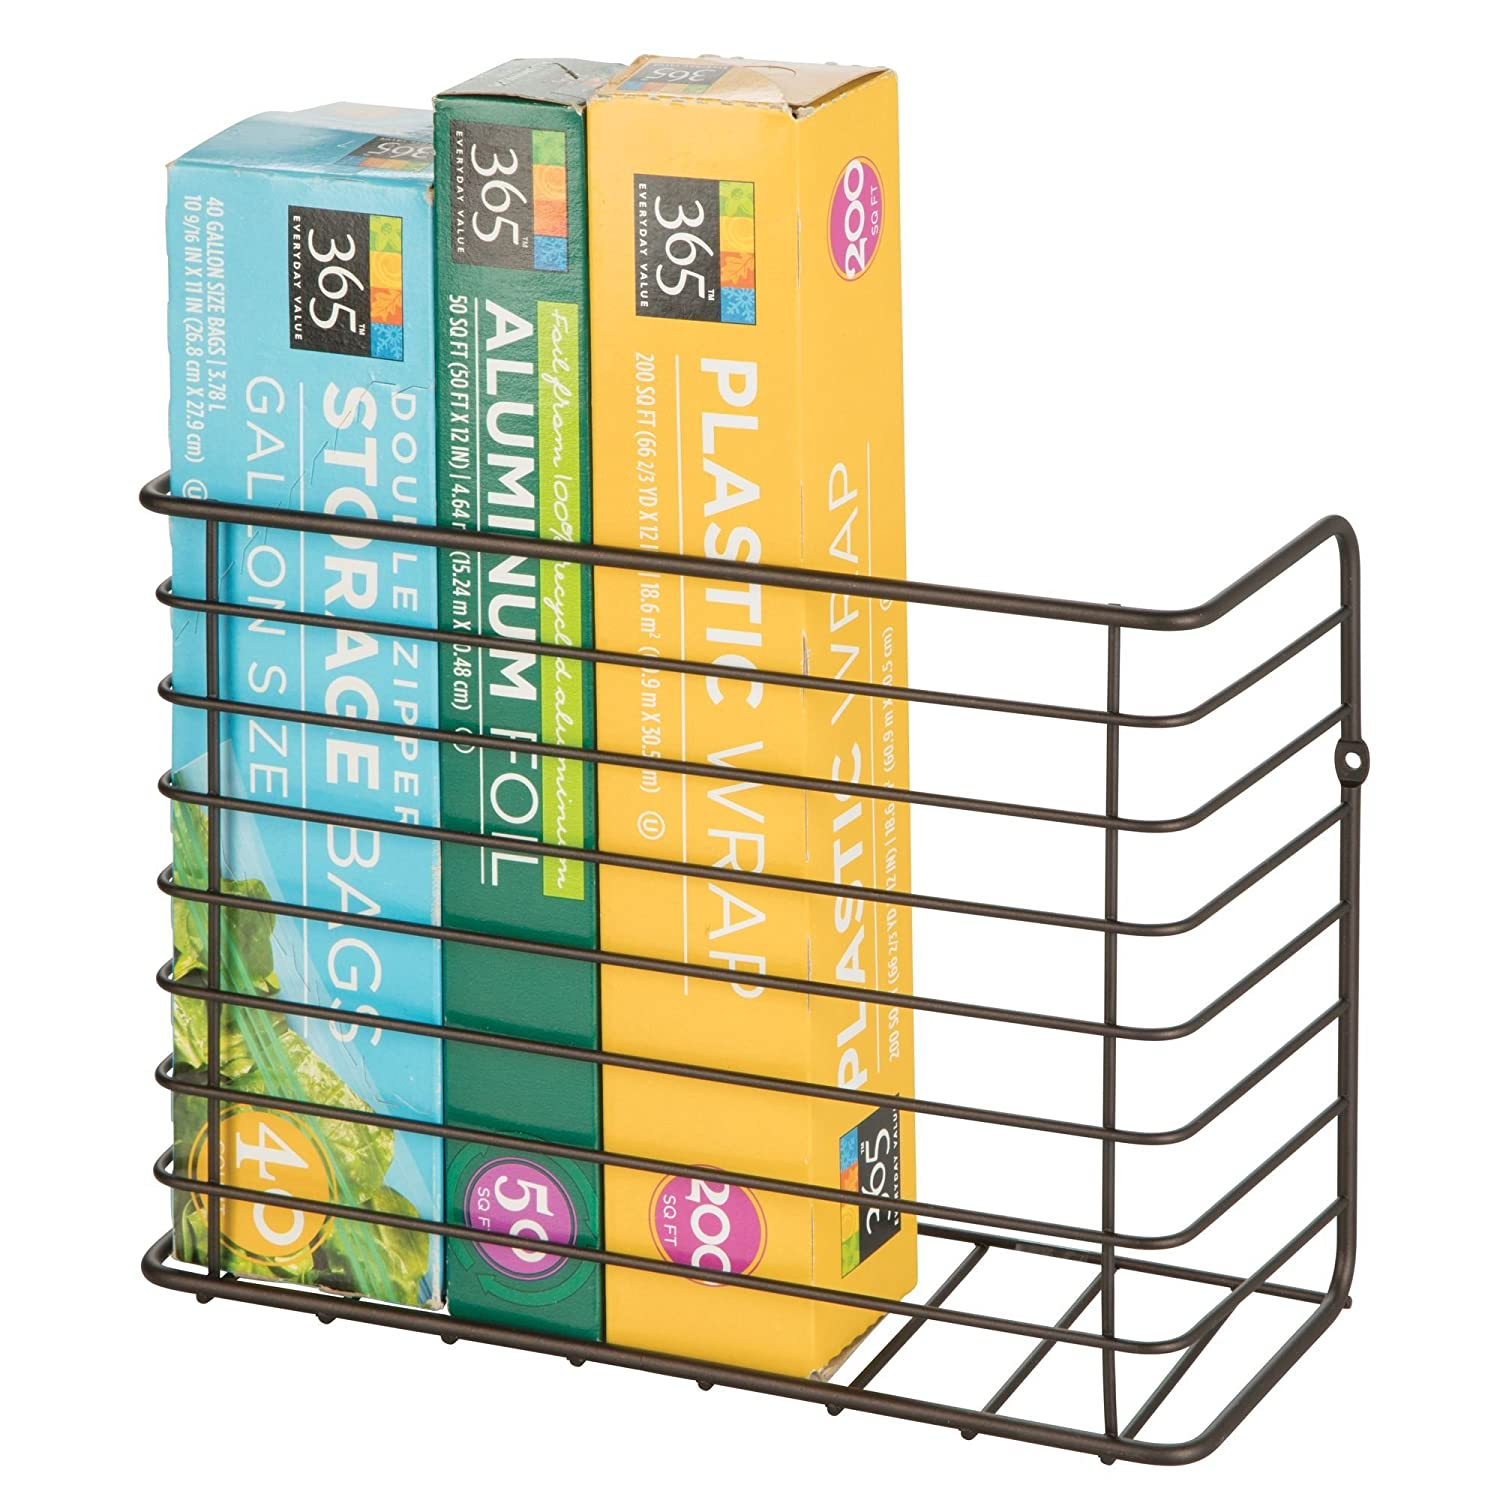 mDesign Wall & Cabinet Door Mount Kitchen Storage Organizer Basket Rack - Mount to Walls and Cabinet Doors in Kitchen, Pantry, and Under Sink - Solid Steel Wire with Bronze Finish MetroDecor